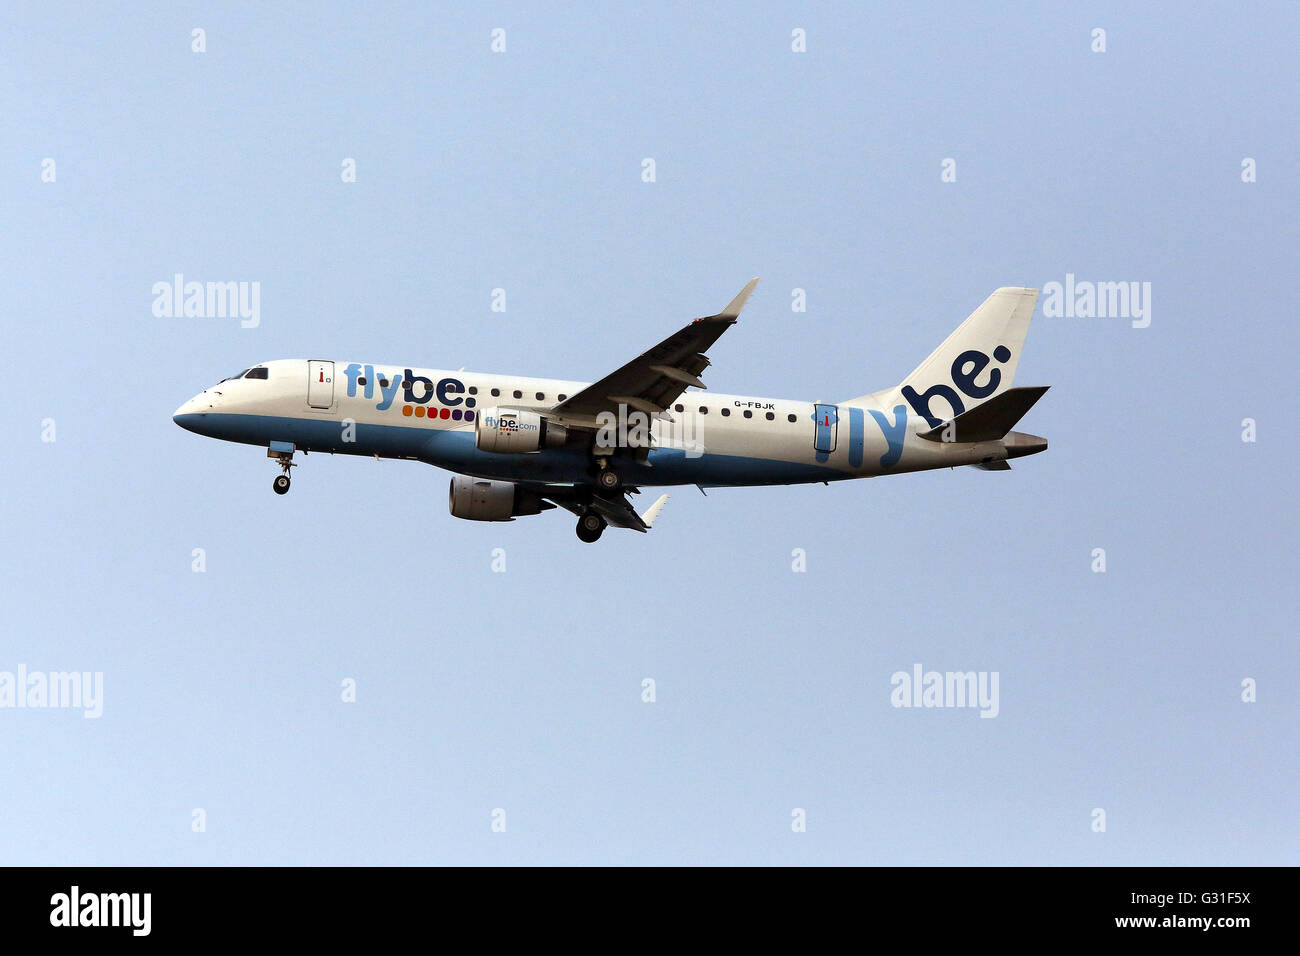 Hannover, Germany, Embraer 175-200 Airline flybe - Stock Image